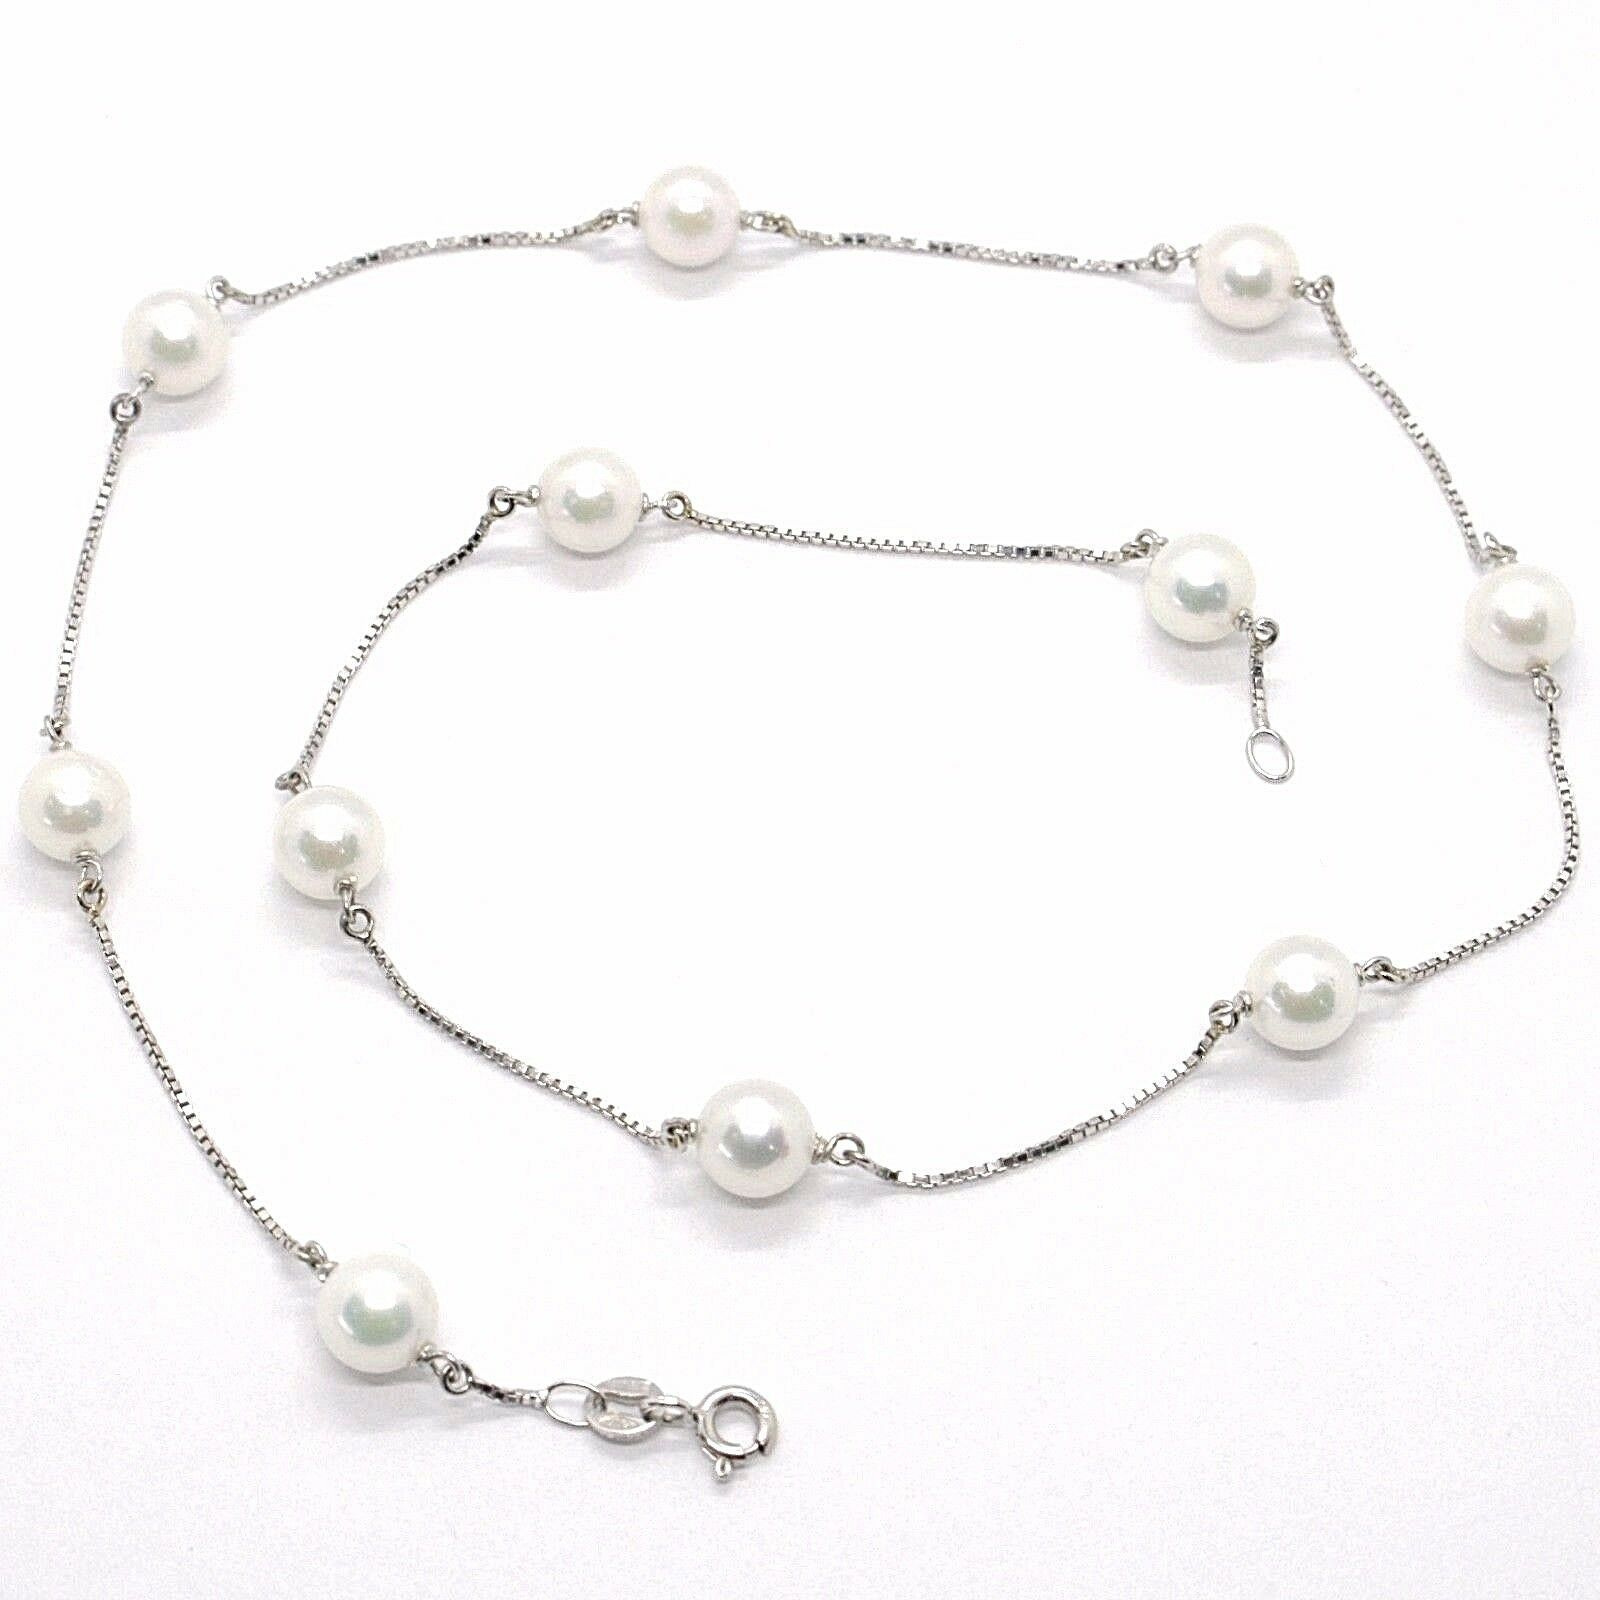 NECKLACE WHITE GOLD 18K, WHITE PEARLS 7.5 MM, AKOYA JAPANESE, CHAIN VENETIAN